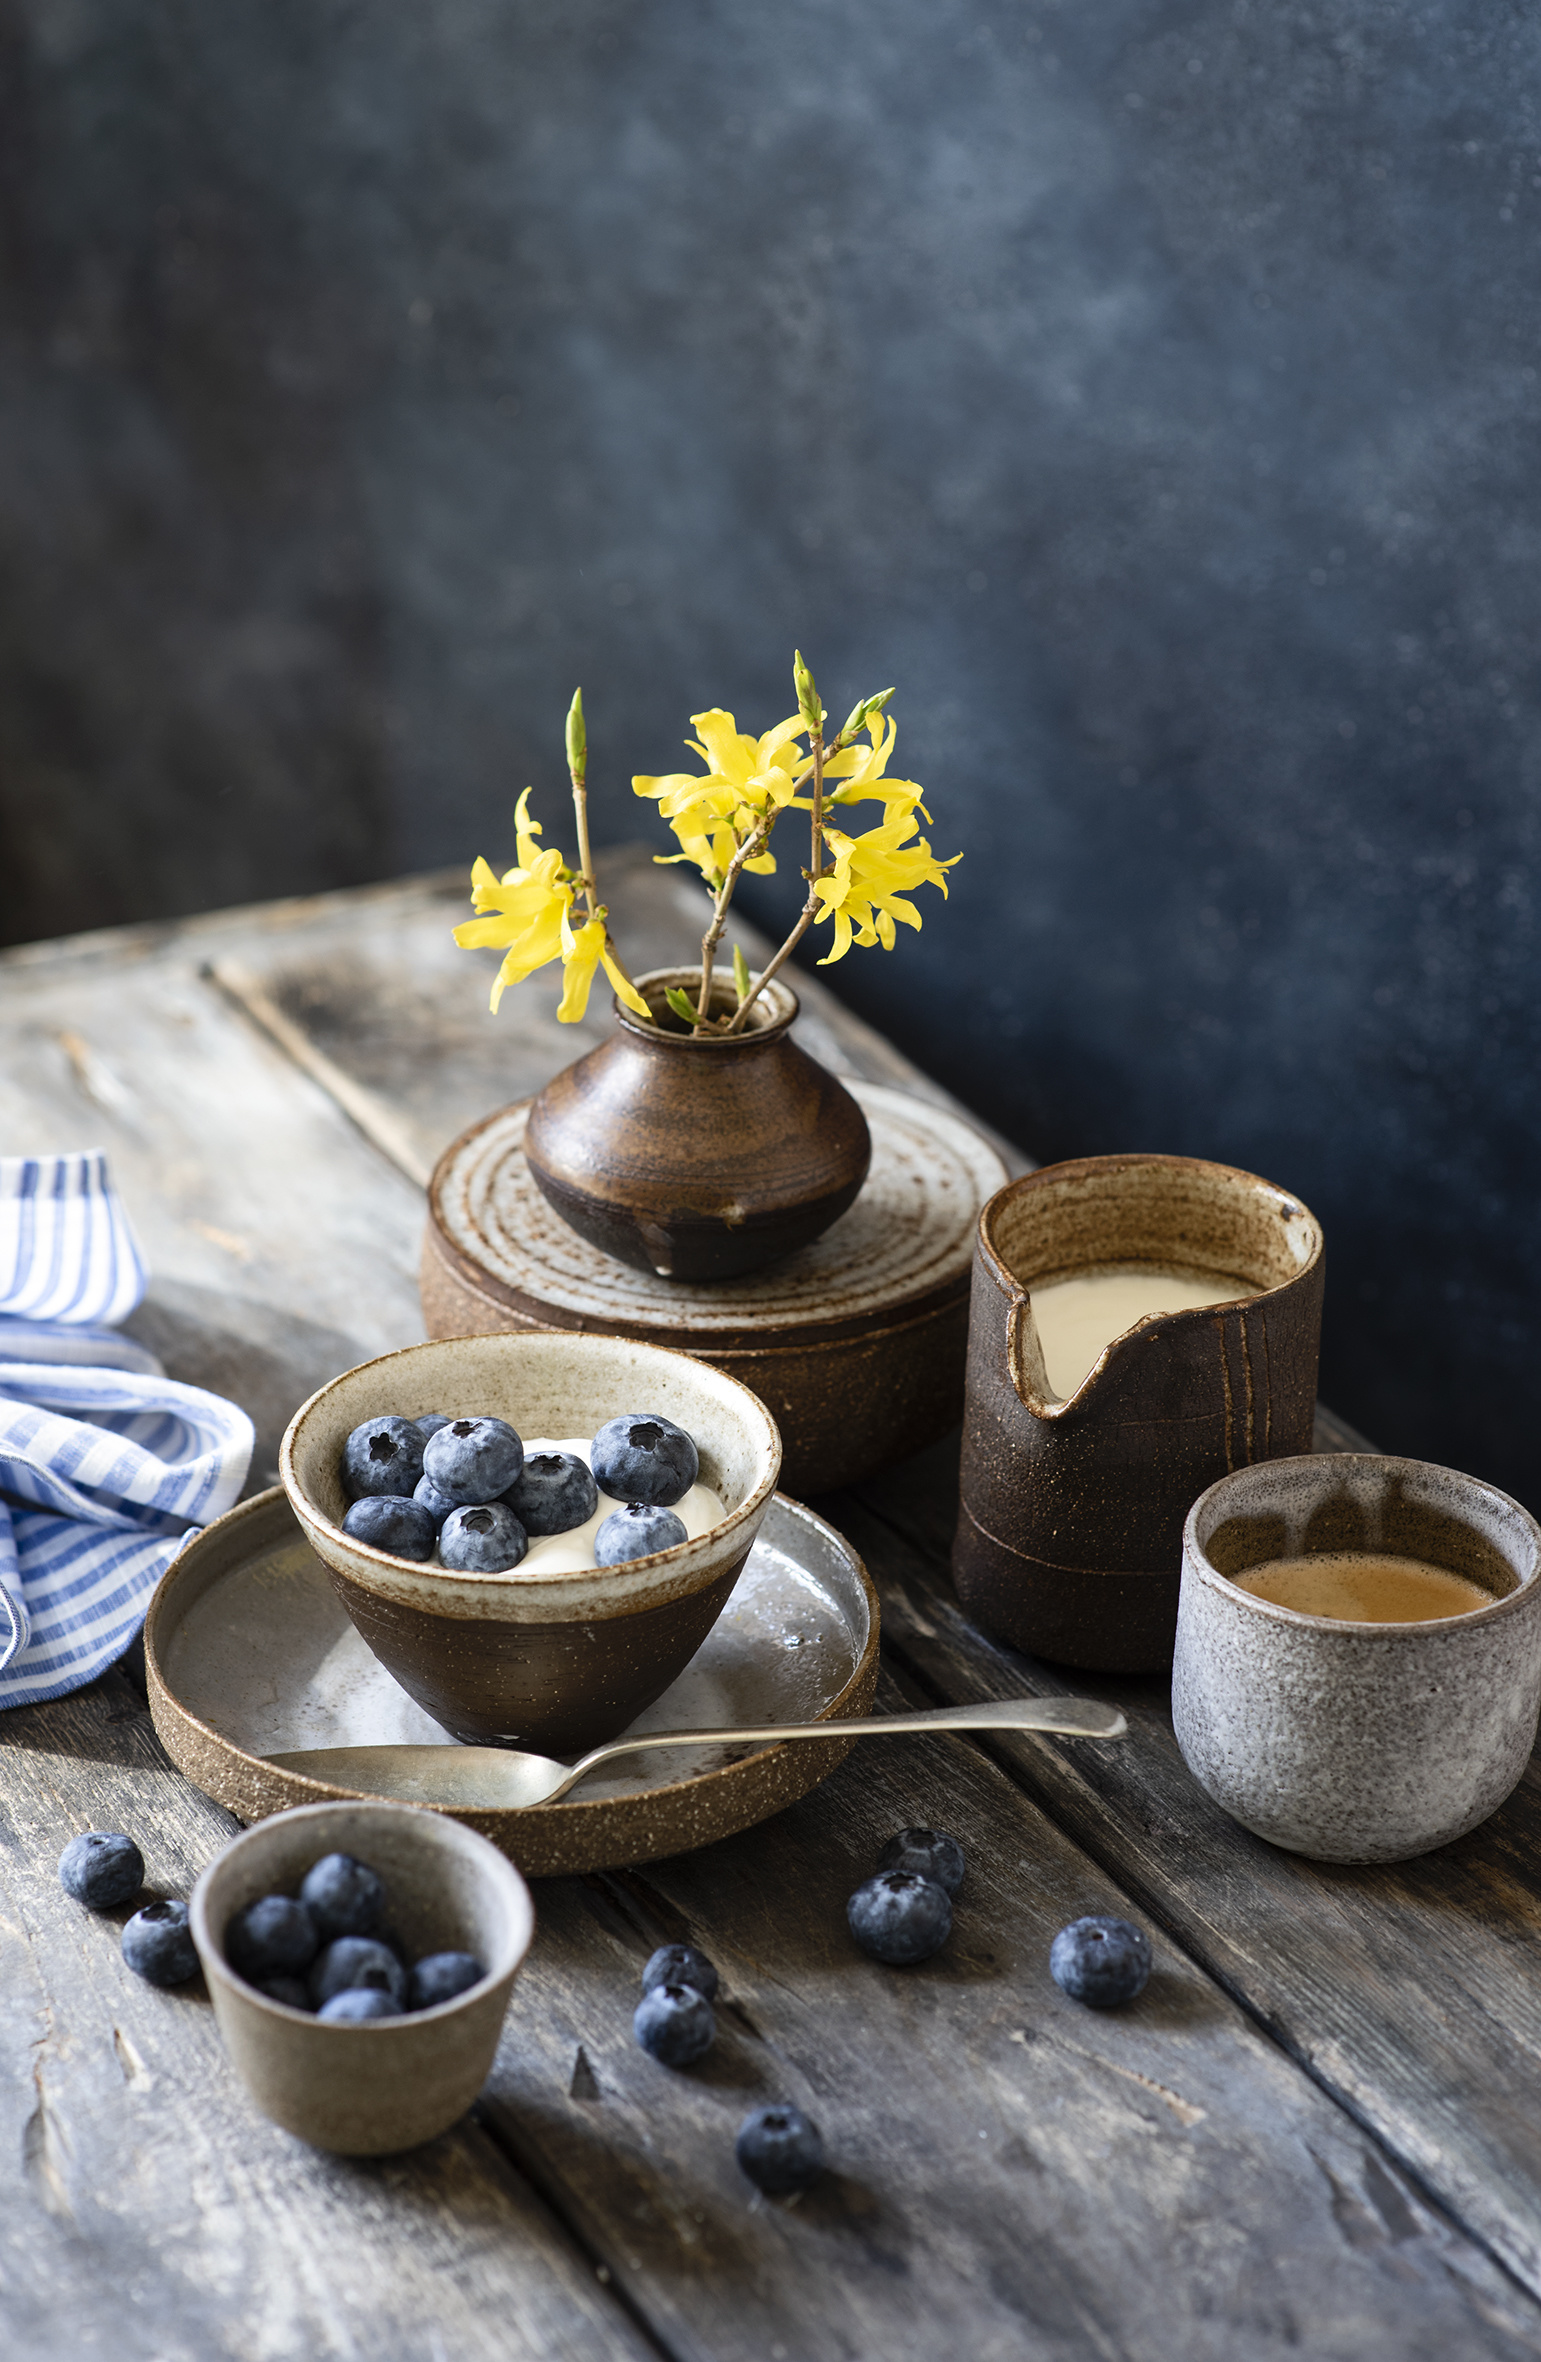 Desktop Wallpapers Coffee Cappuccino Blueberries Mug Vase Food Branches Wood planks  for Mobile phone boards